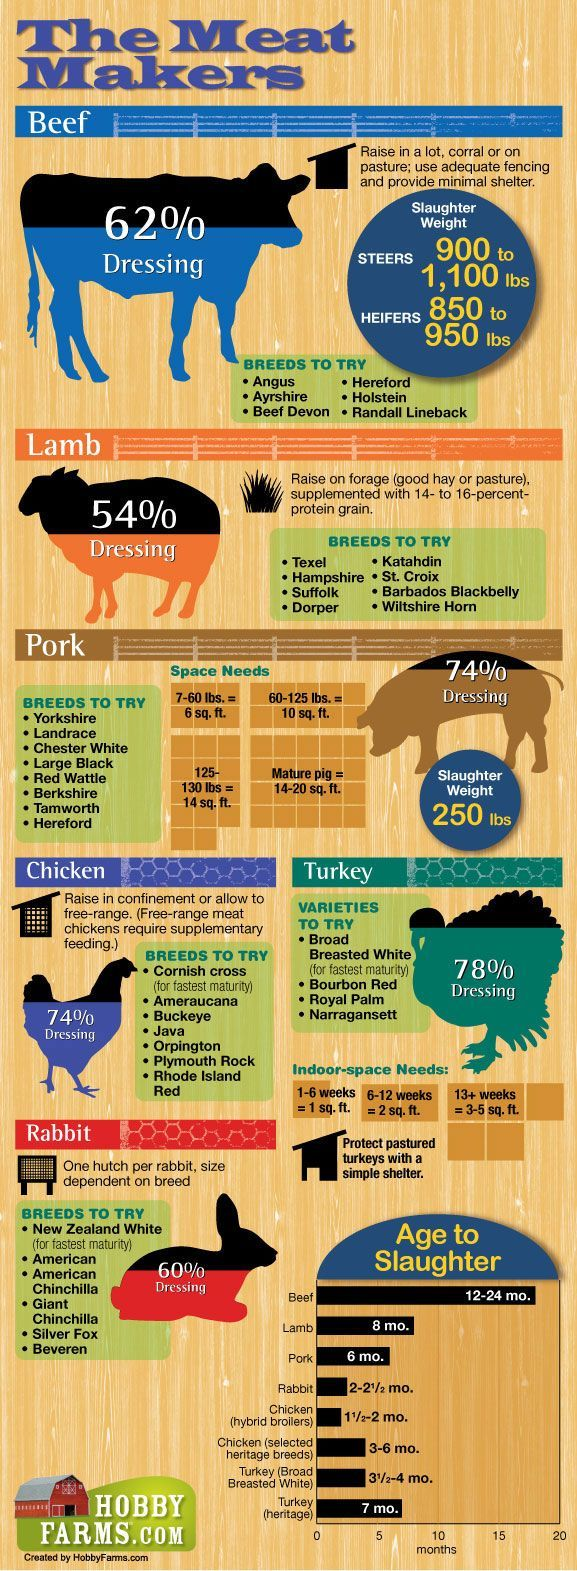 Infographic: The Meat Makers Get the info you need to choose the best meat to raise on your hobby farm.